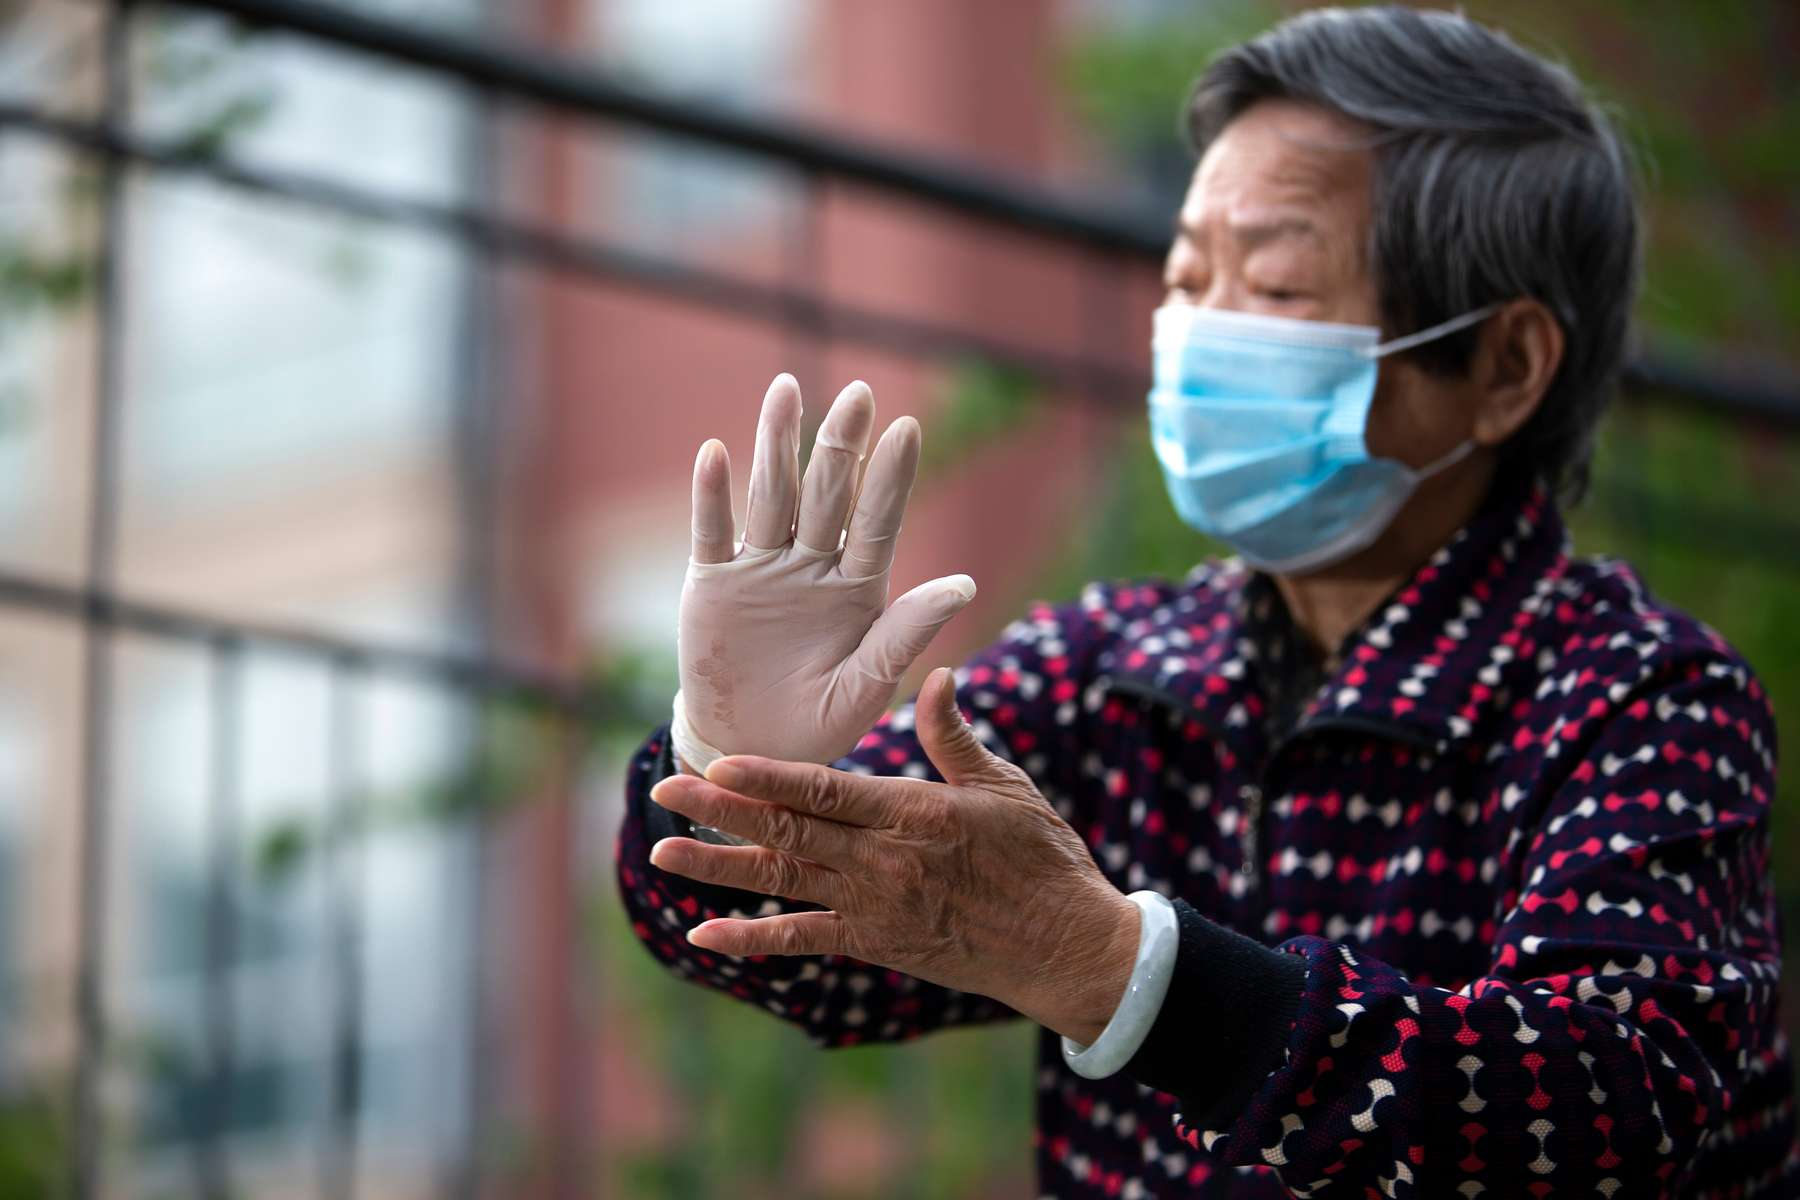 """Tan Zhong Lian, an 86 year-old Chinese immigrant from the Guangdong province, practices Tai Chi on a balcony at the Legacy House on May 26, 2020. Lian normally would do her daily exercise at a nearby park but since the Governor's Stay-at-Home order she has had to practice on the balcony of the assisted living facility. """"Now I cannot go out because I get infected if I go out, so I have to stay inside. So I do exercise in the morning and then evening and I feel satisfied with everything I have…. At the beginning it's so difficult. Just start to quarantine, so difficult. Didn't know what to do. So boring, cannot go out. Now I got used to it because I find a place I can do exercise."""""""